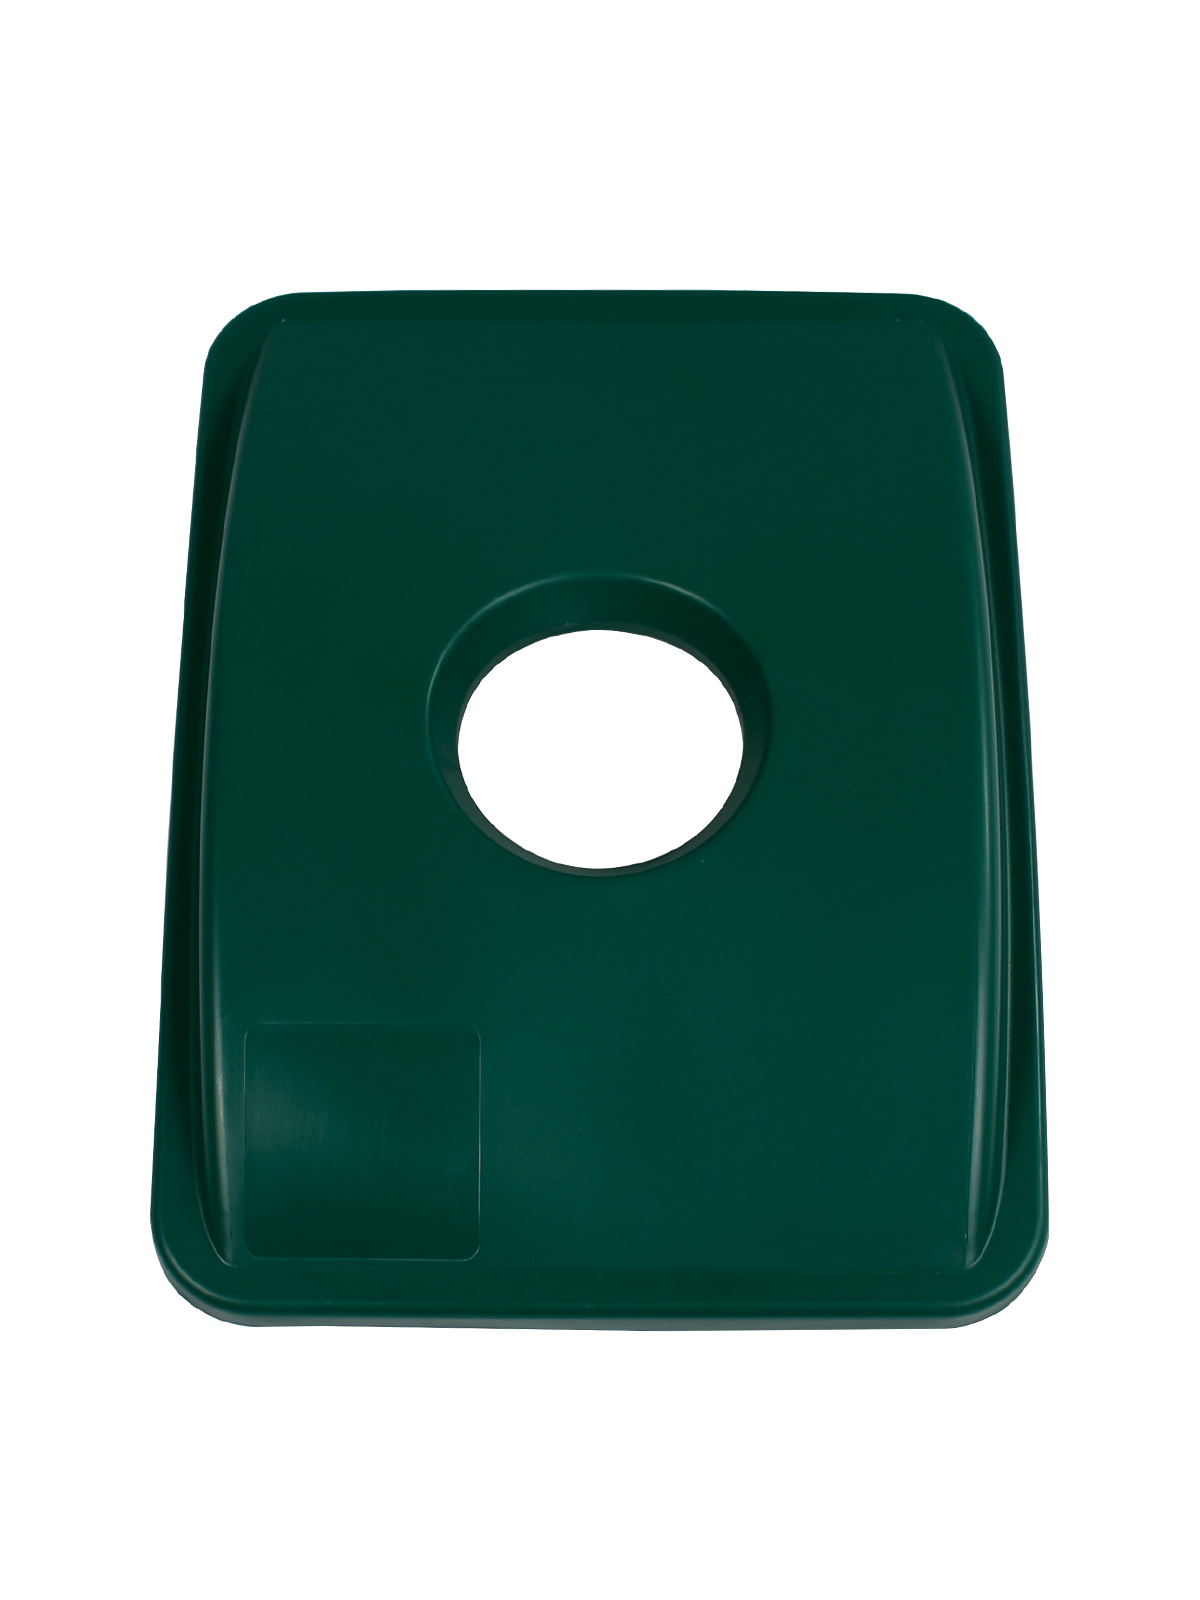 WASTE WATCHER® XL - LID - CIRCLE OPENING - DARK GREEN title=